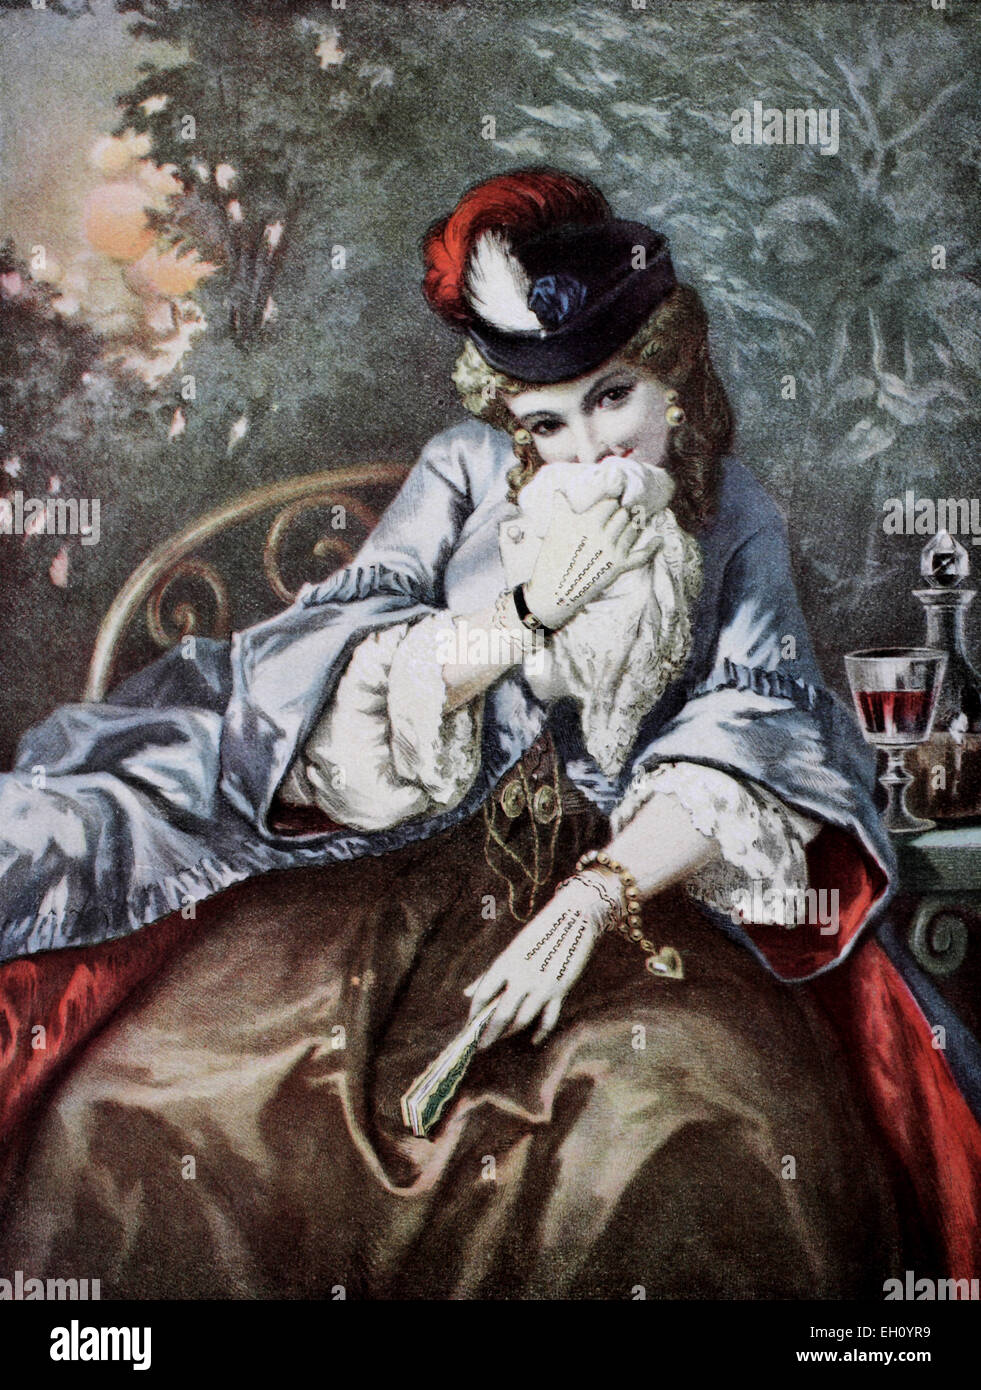 The cocotte, historic color lithograph after a painting by Gustave Dore, 1860 - Stock Image